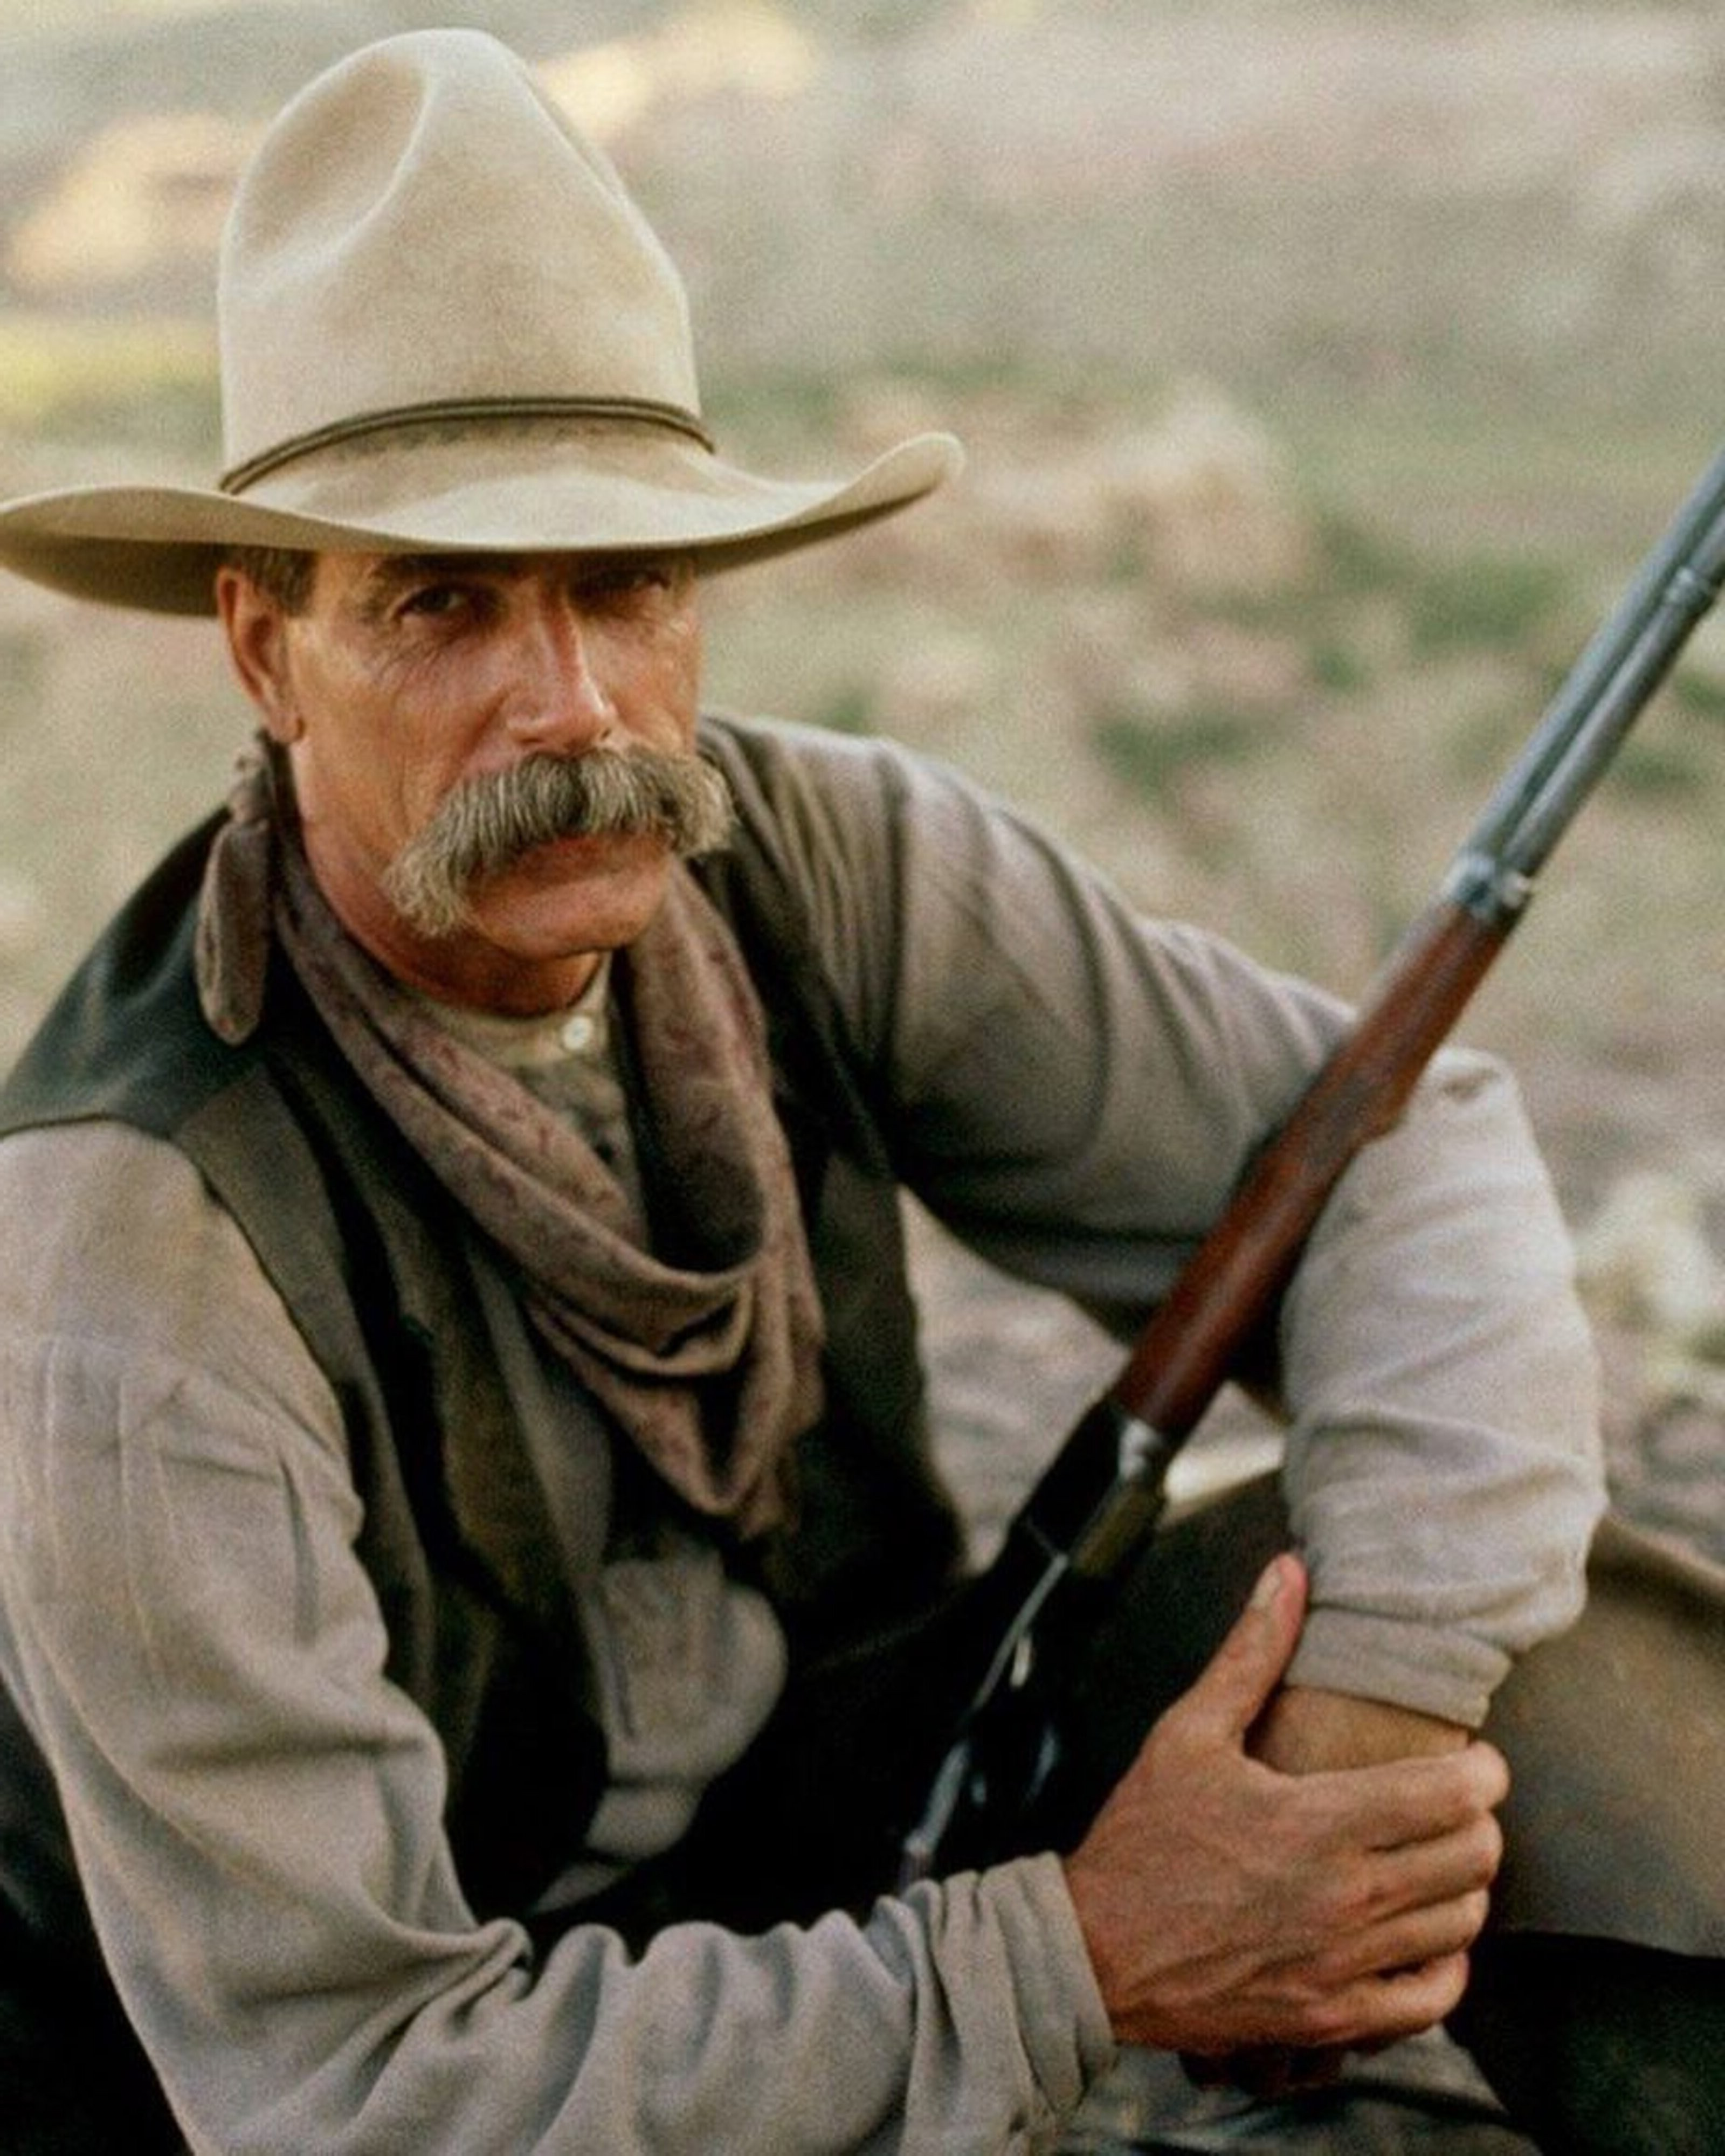 Handlebar mustache in the style of Sam Elliott.